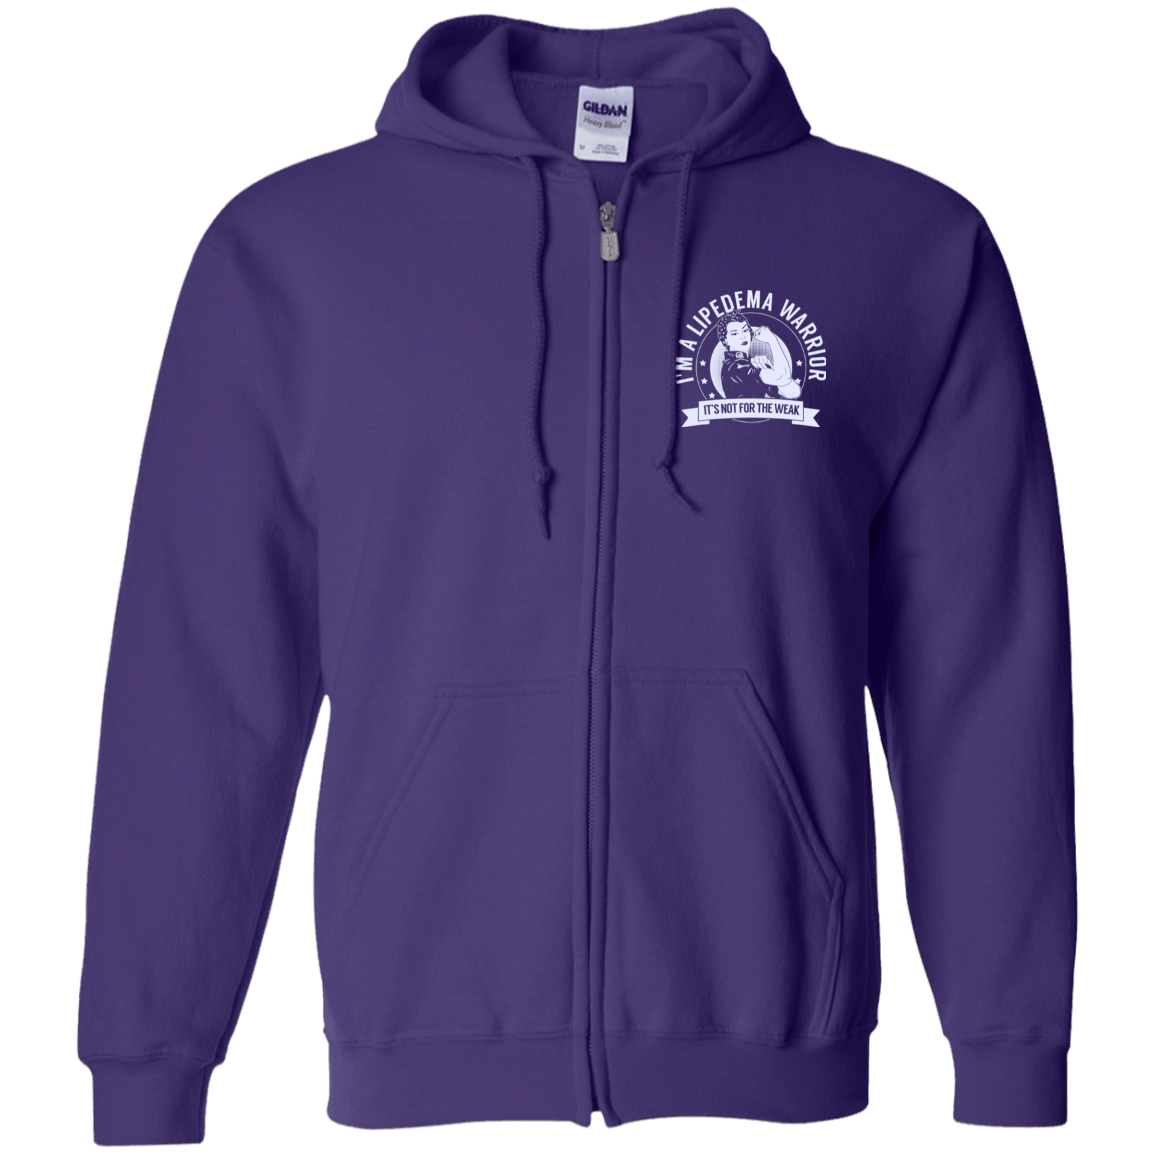 Sweatshirts - Lipedema Warrior NFTW Zip Up Hooded Sweatshirt